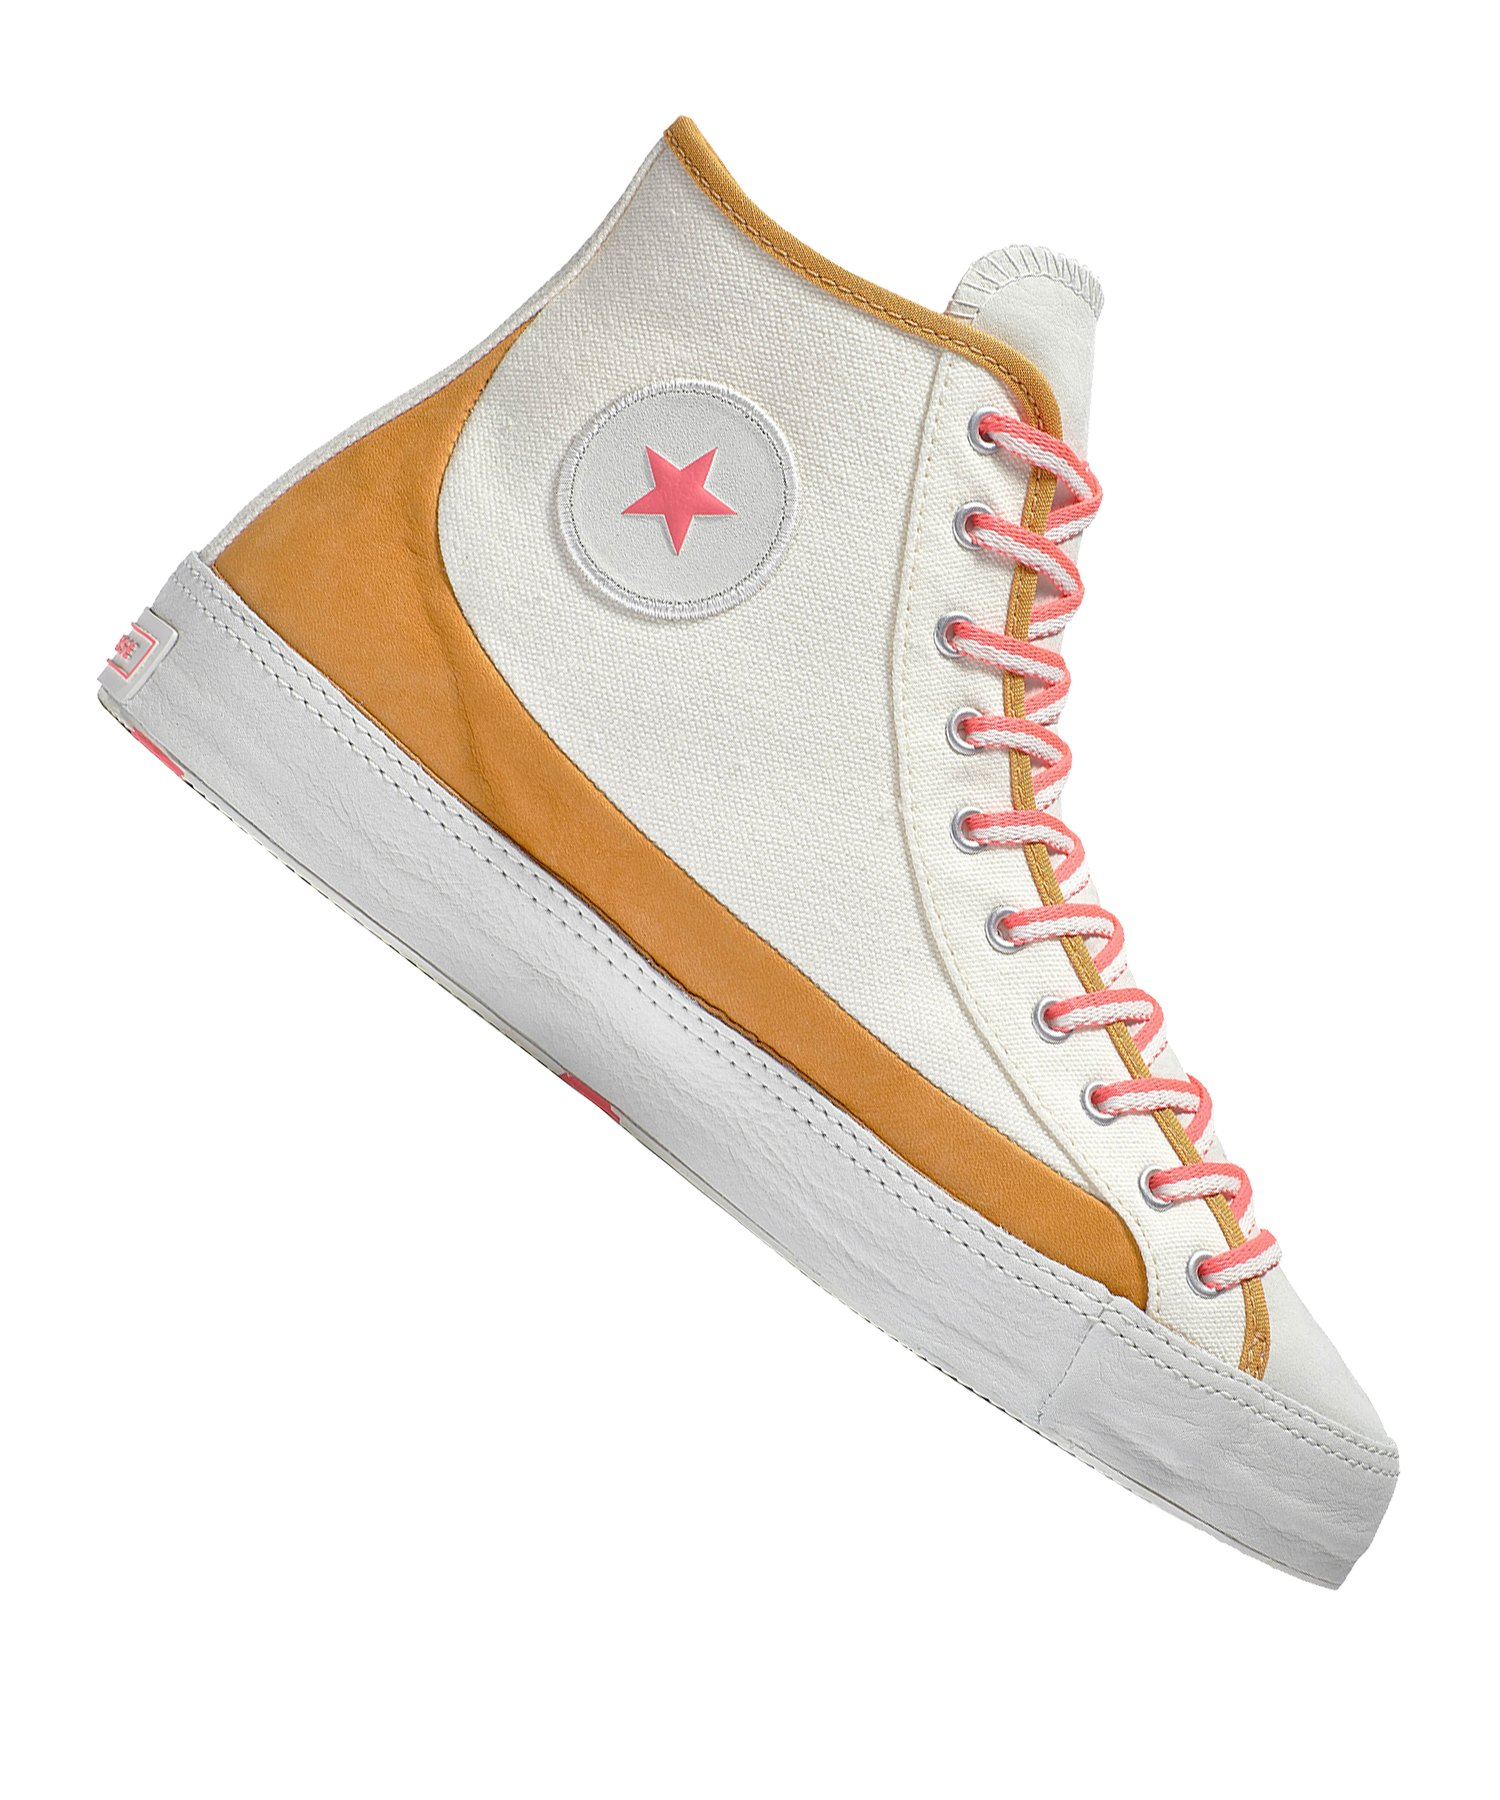 Converse CT All Star HI Sasha Damen Sneaker F185